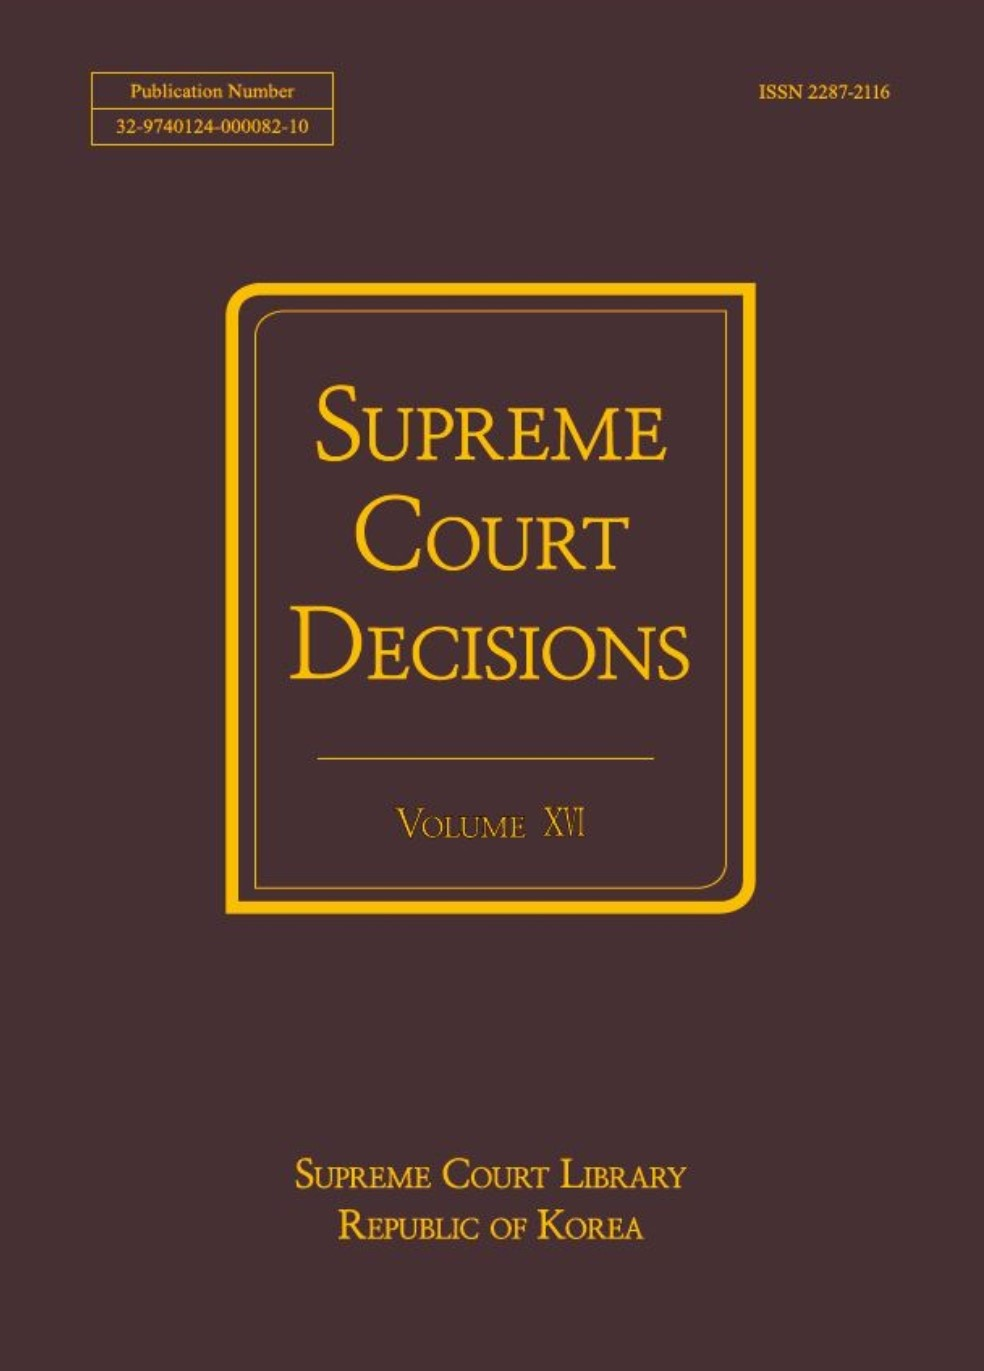 Supreme Court Decisions Vol.16